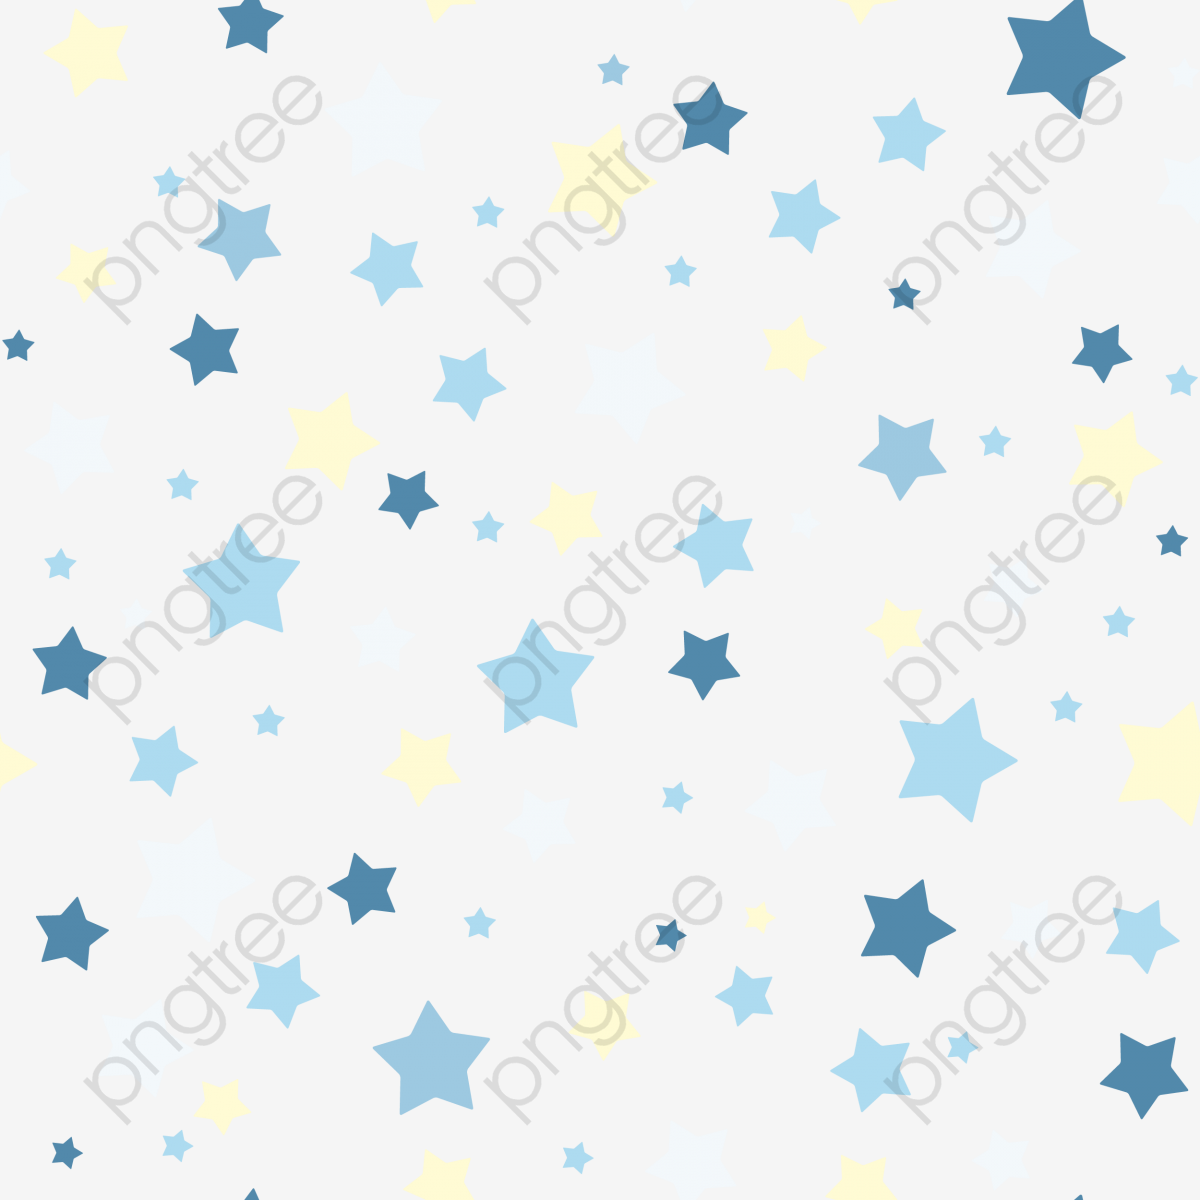 86955ceb217 Commercial use resource. Upgrade to Premium plan and get license  authorization.Upgrade Now · small fresh decorative background stars,  Decoration ...